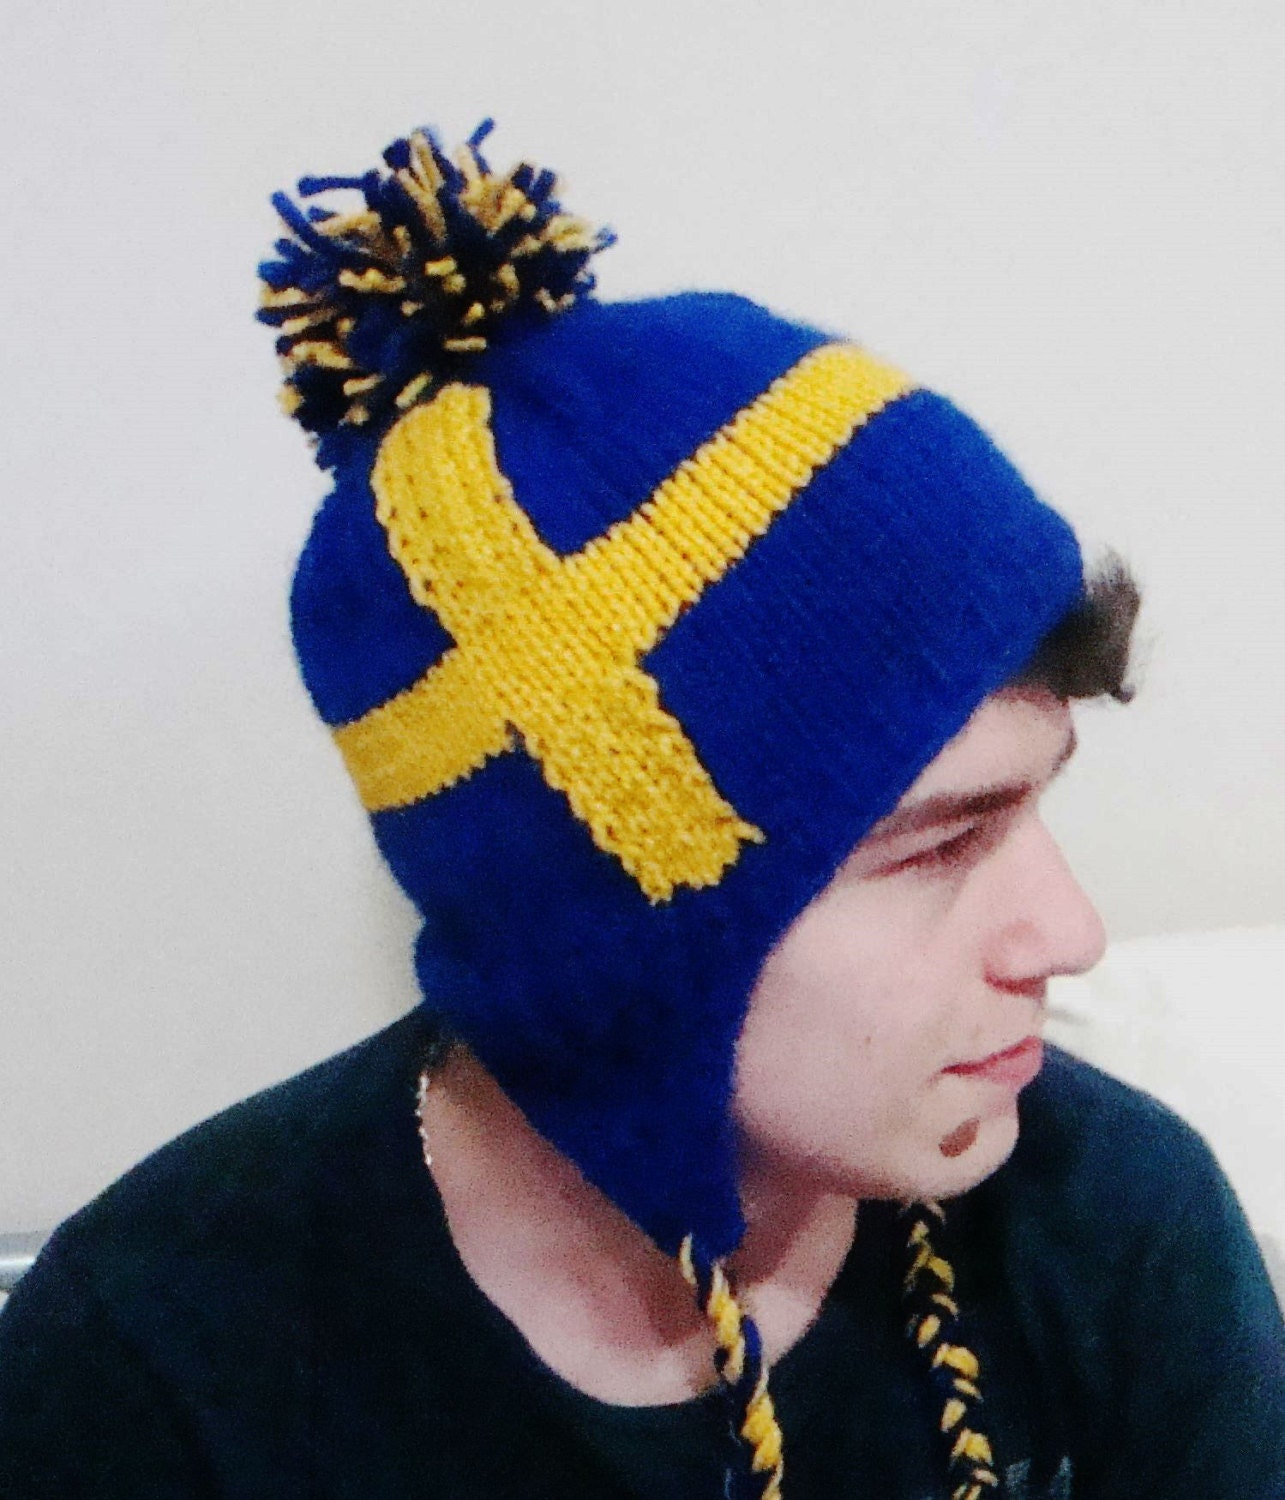 swedish flag beanie hat with ear flap hat a blue field with a